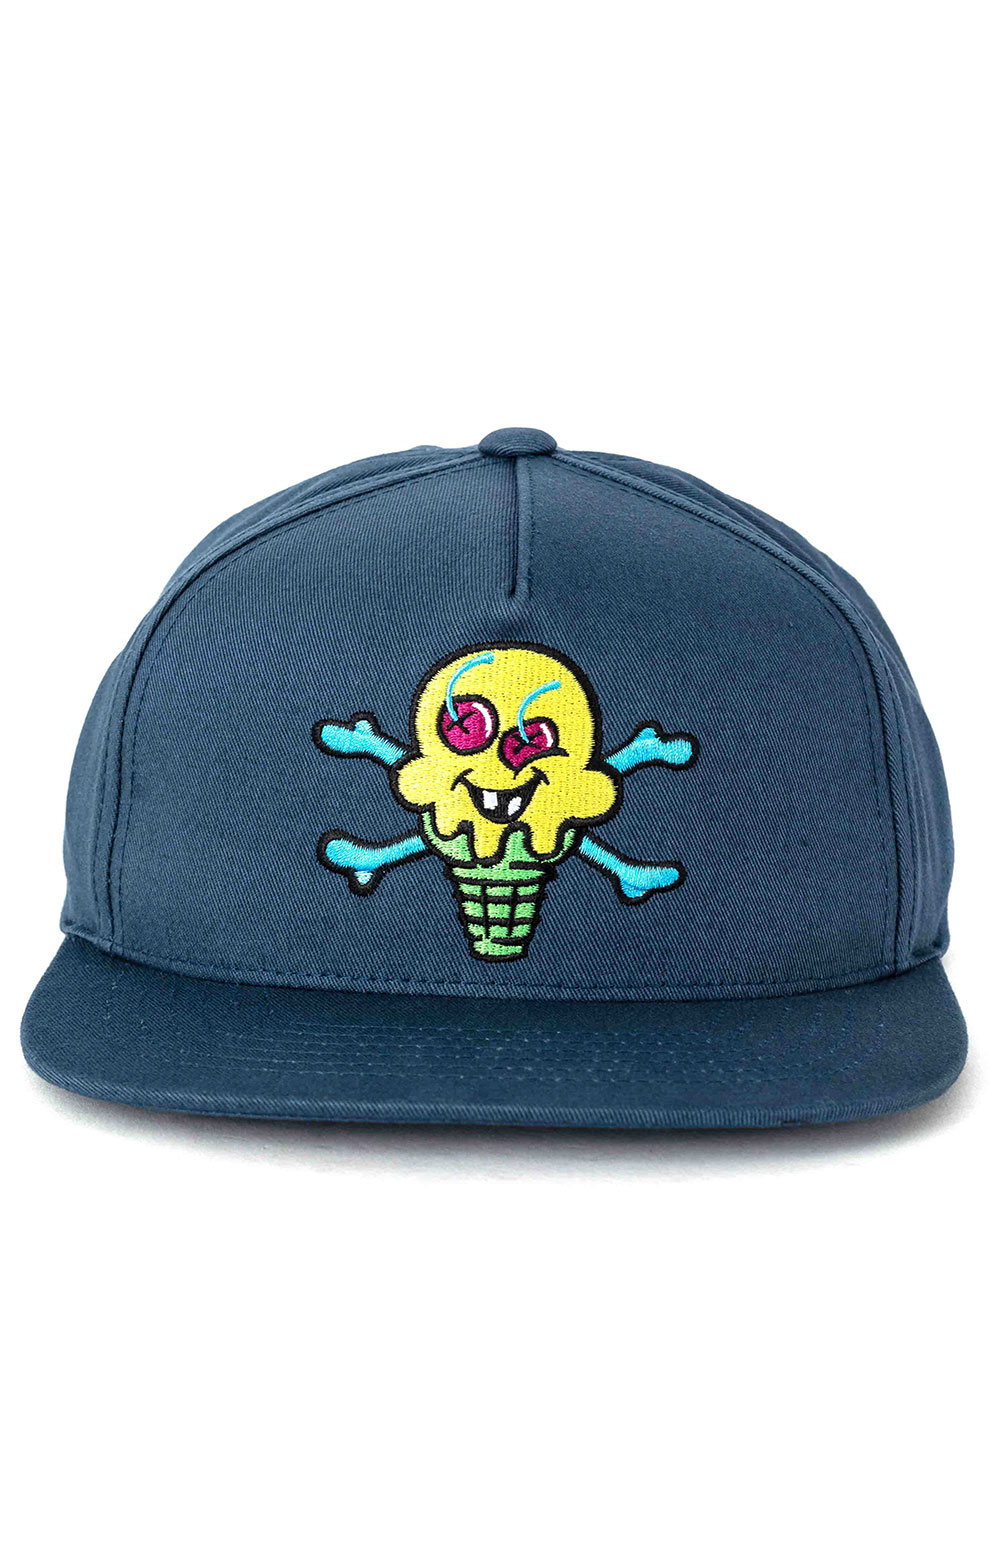 Green Cone Snap-Back Hat - Midnight  2